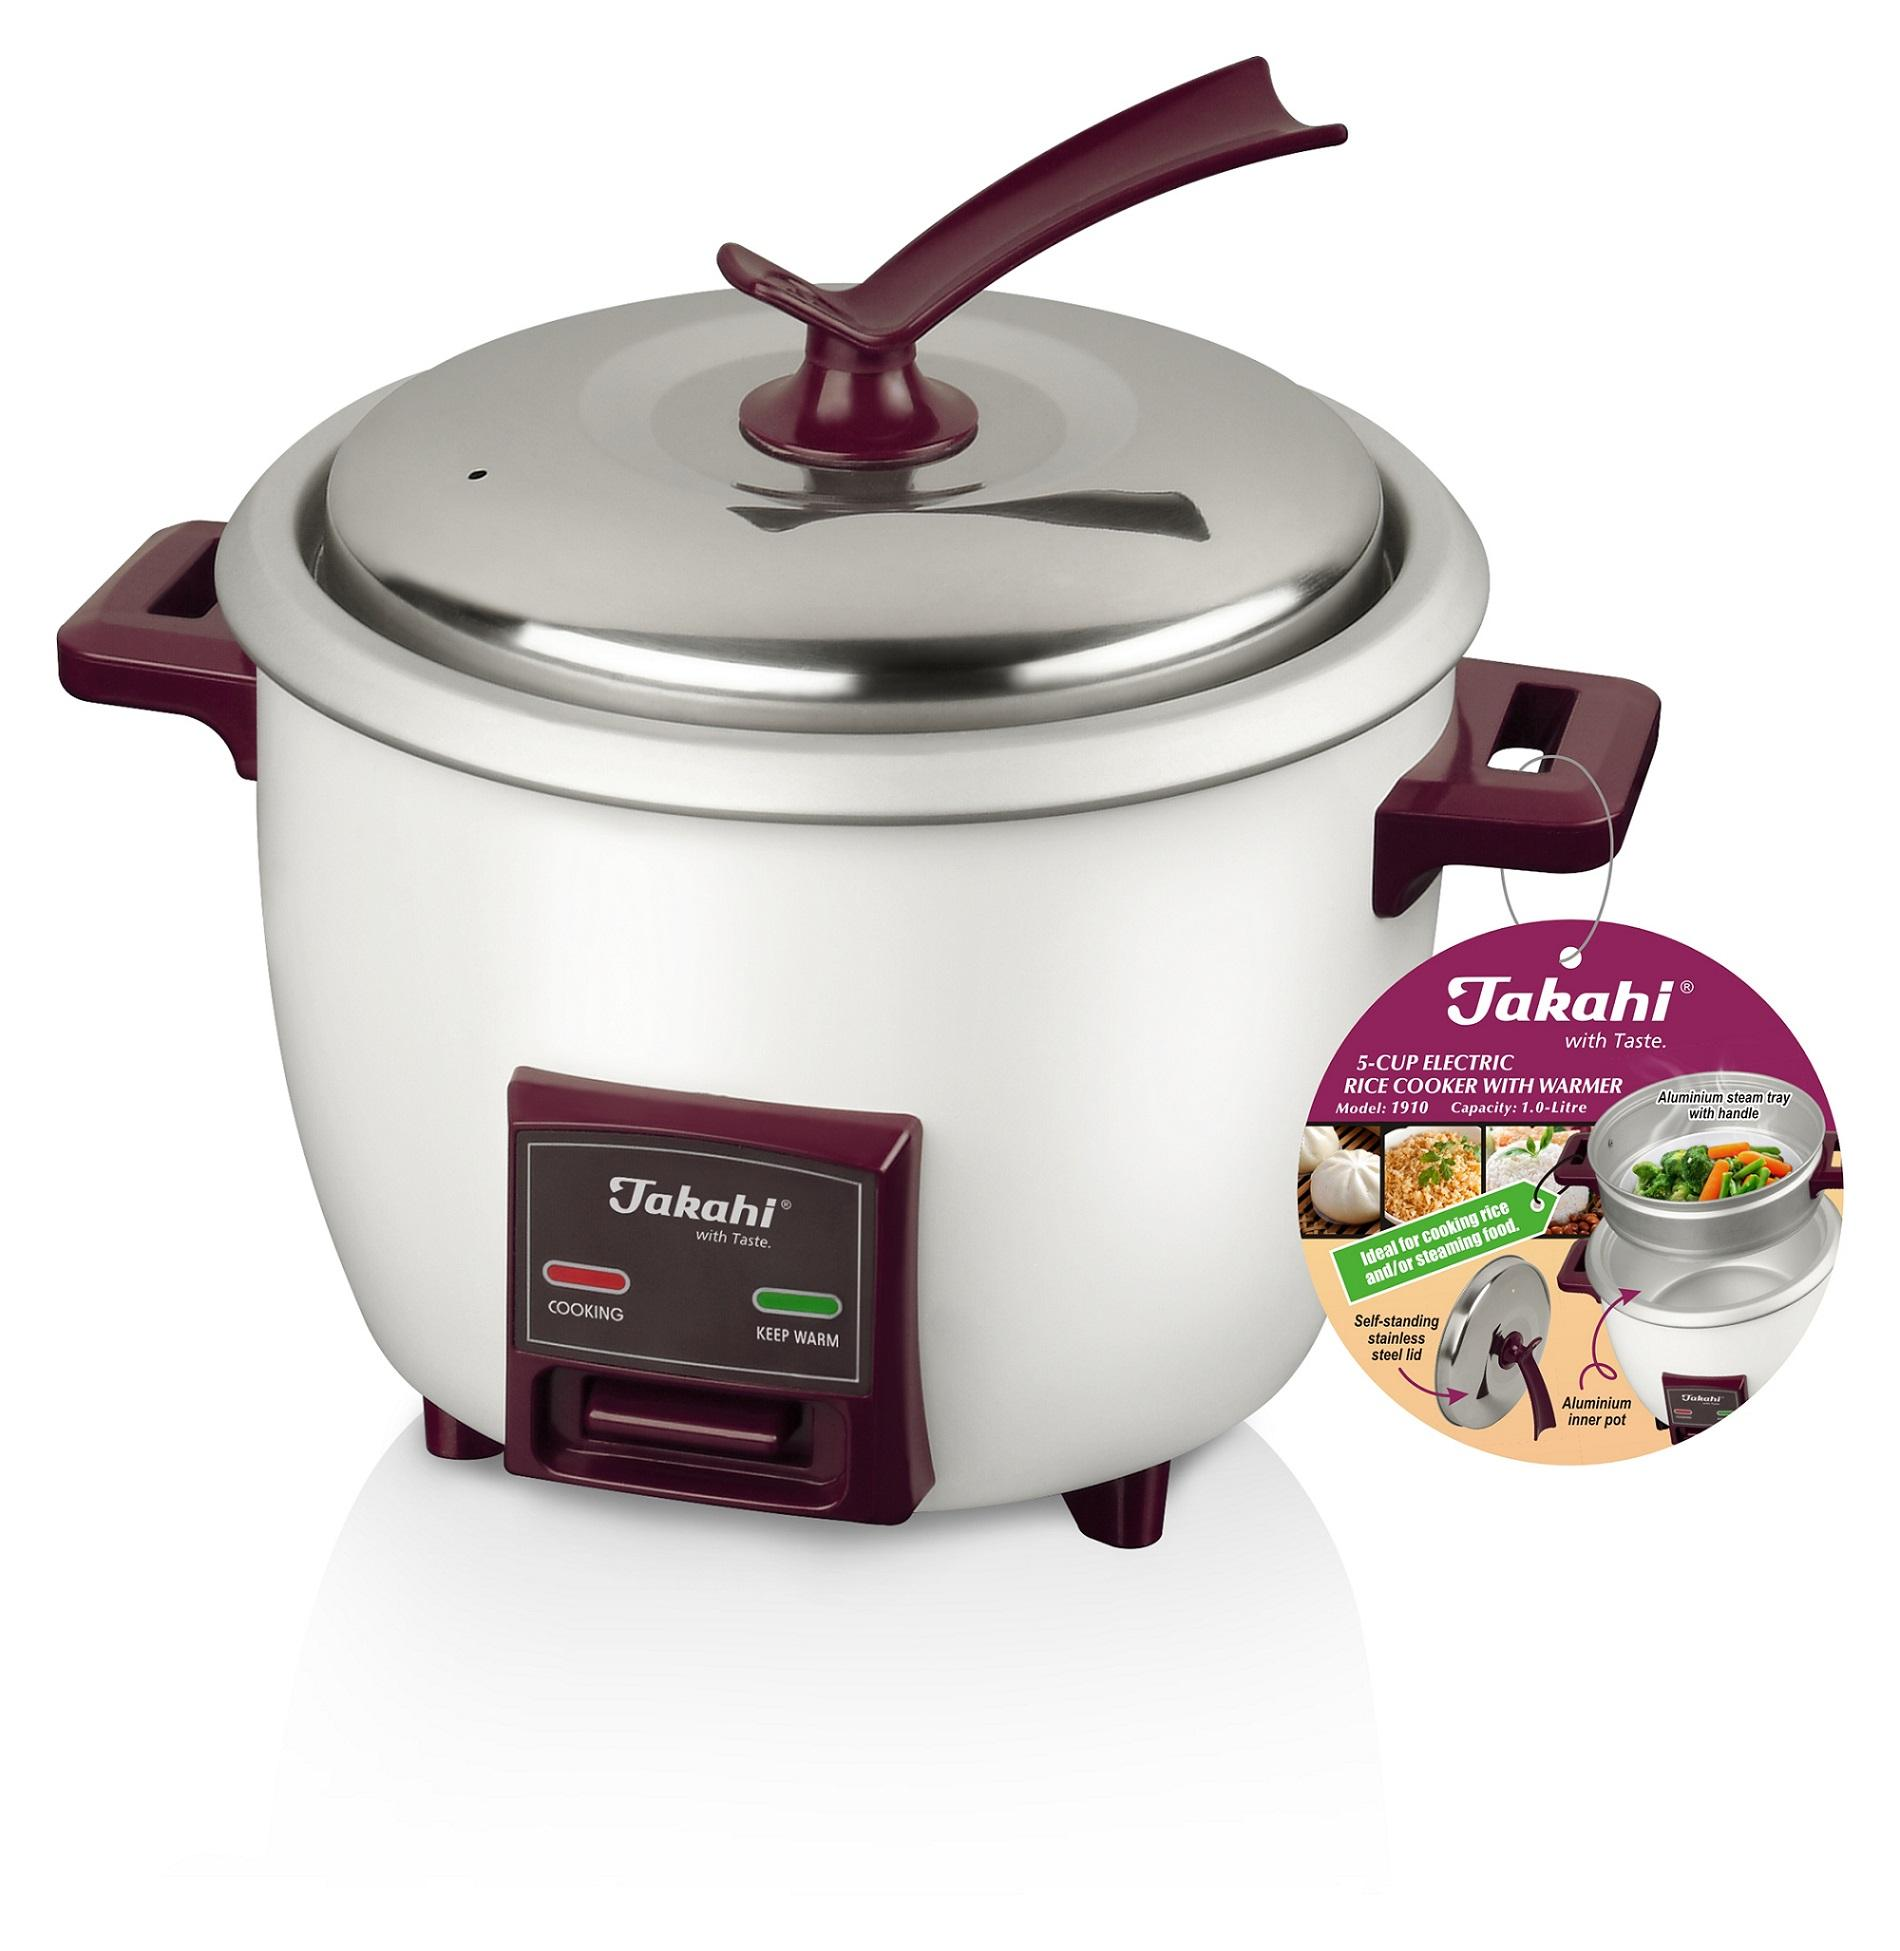 Takahi 5-Cup (1.0-Litre) Electric Rice Cooker with Warmer and Steamer